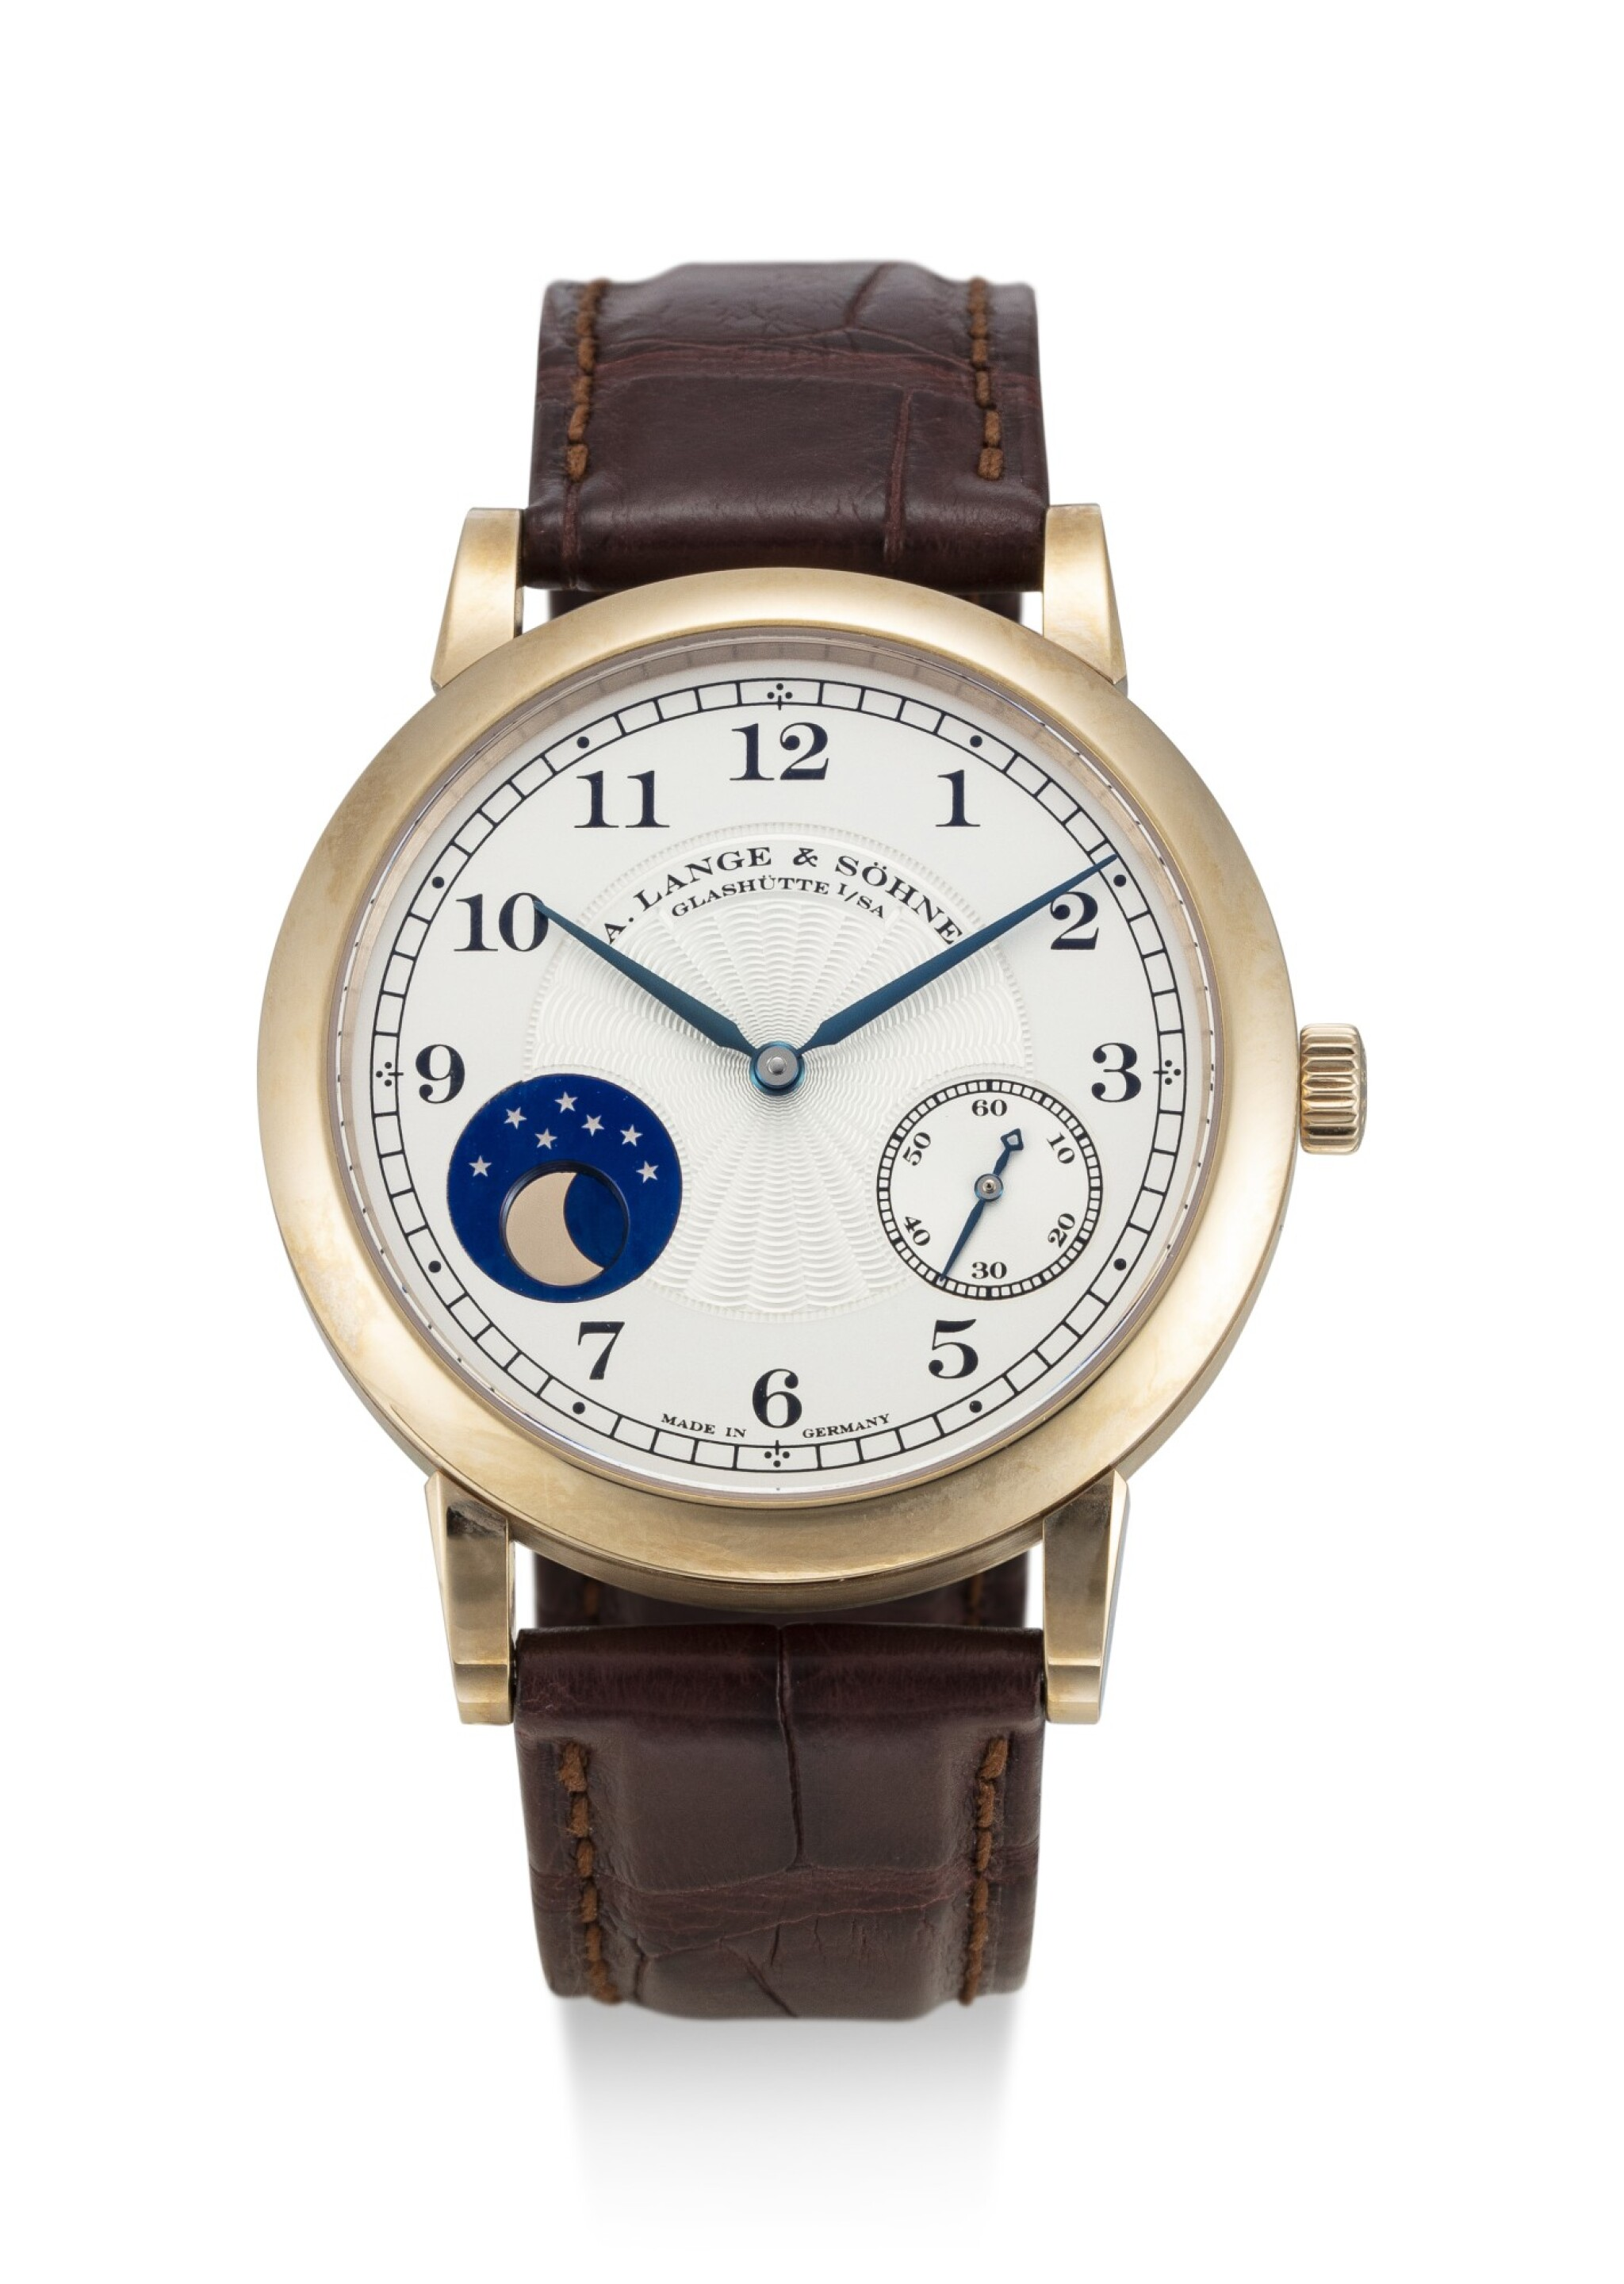 View full screen - View 1 of Lot 62. A. LANGE & SÖHNE | 1815 HOMAGE TO F.A LANGE 1815 MOONPHASE, REFERENCE 212.050, A LIMITED EDITION HONEY GOLD WRISTWATCH WITH HACKING FEATURE AND MOON PHASES, MADE TO COMMEMORATE THE 165TH ANNIVERSARY OF A. LANGE & SÖHNE IN 2010, CIRCA 2011.